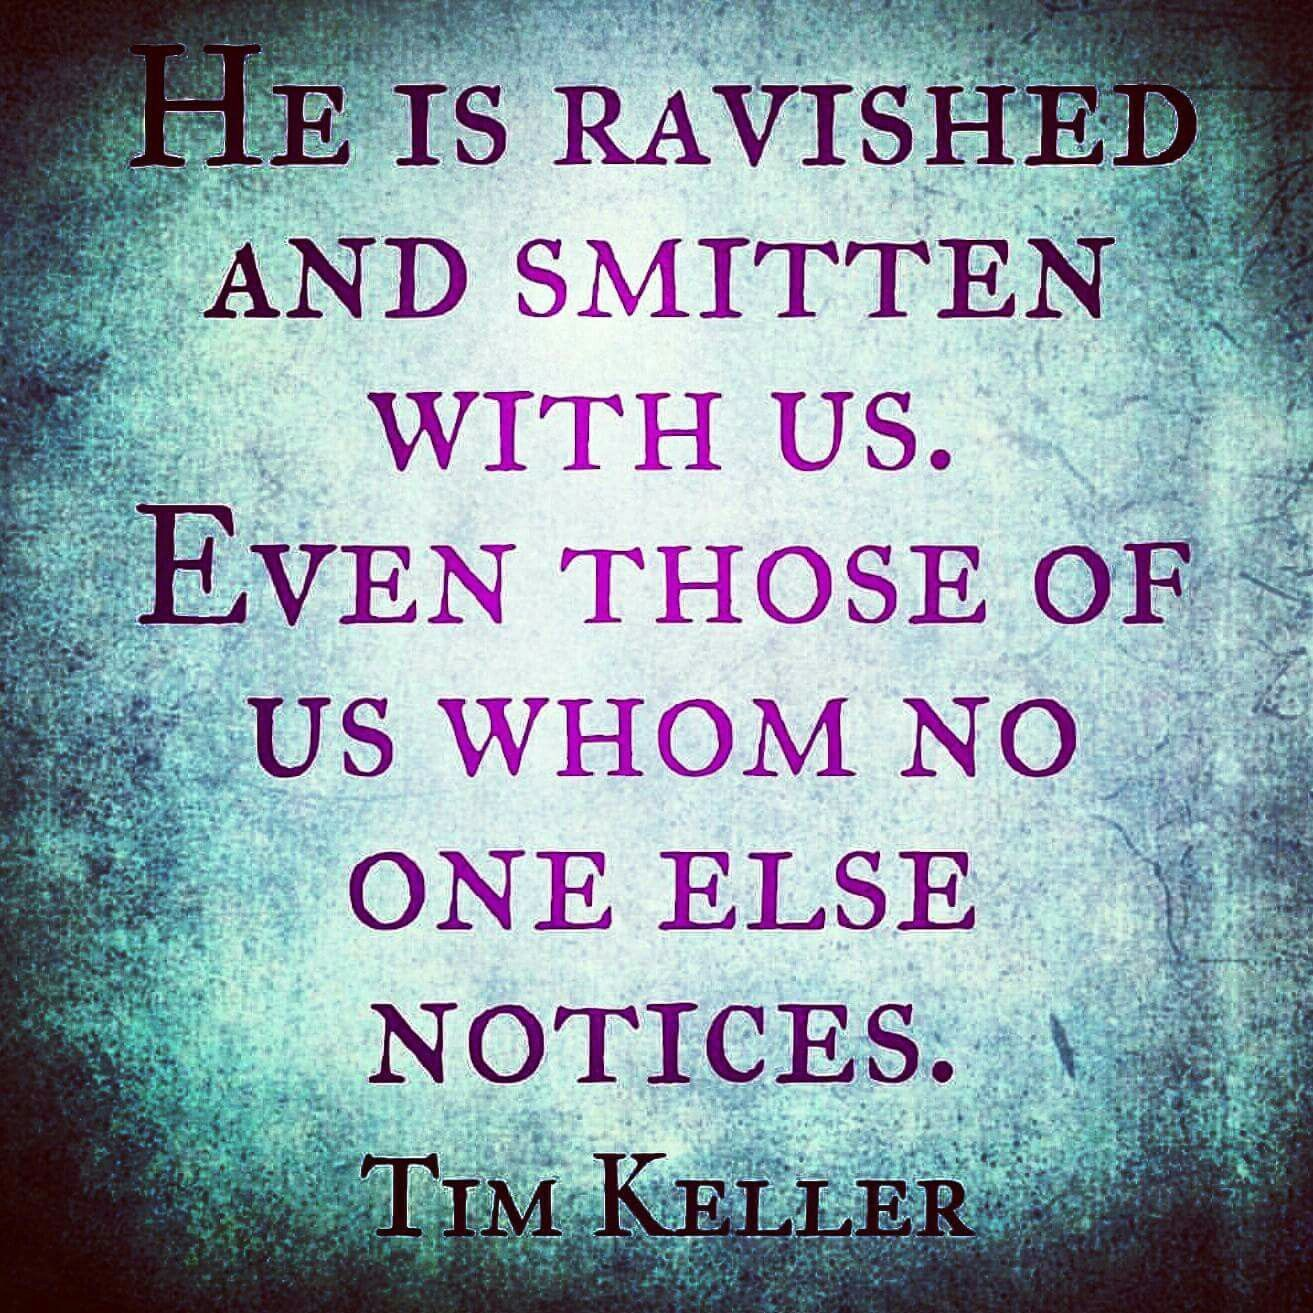 Timothy Keller Quotes Christian Quotes  Tim Keller Quotes  God  Reformed Quotes